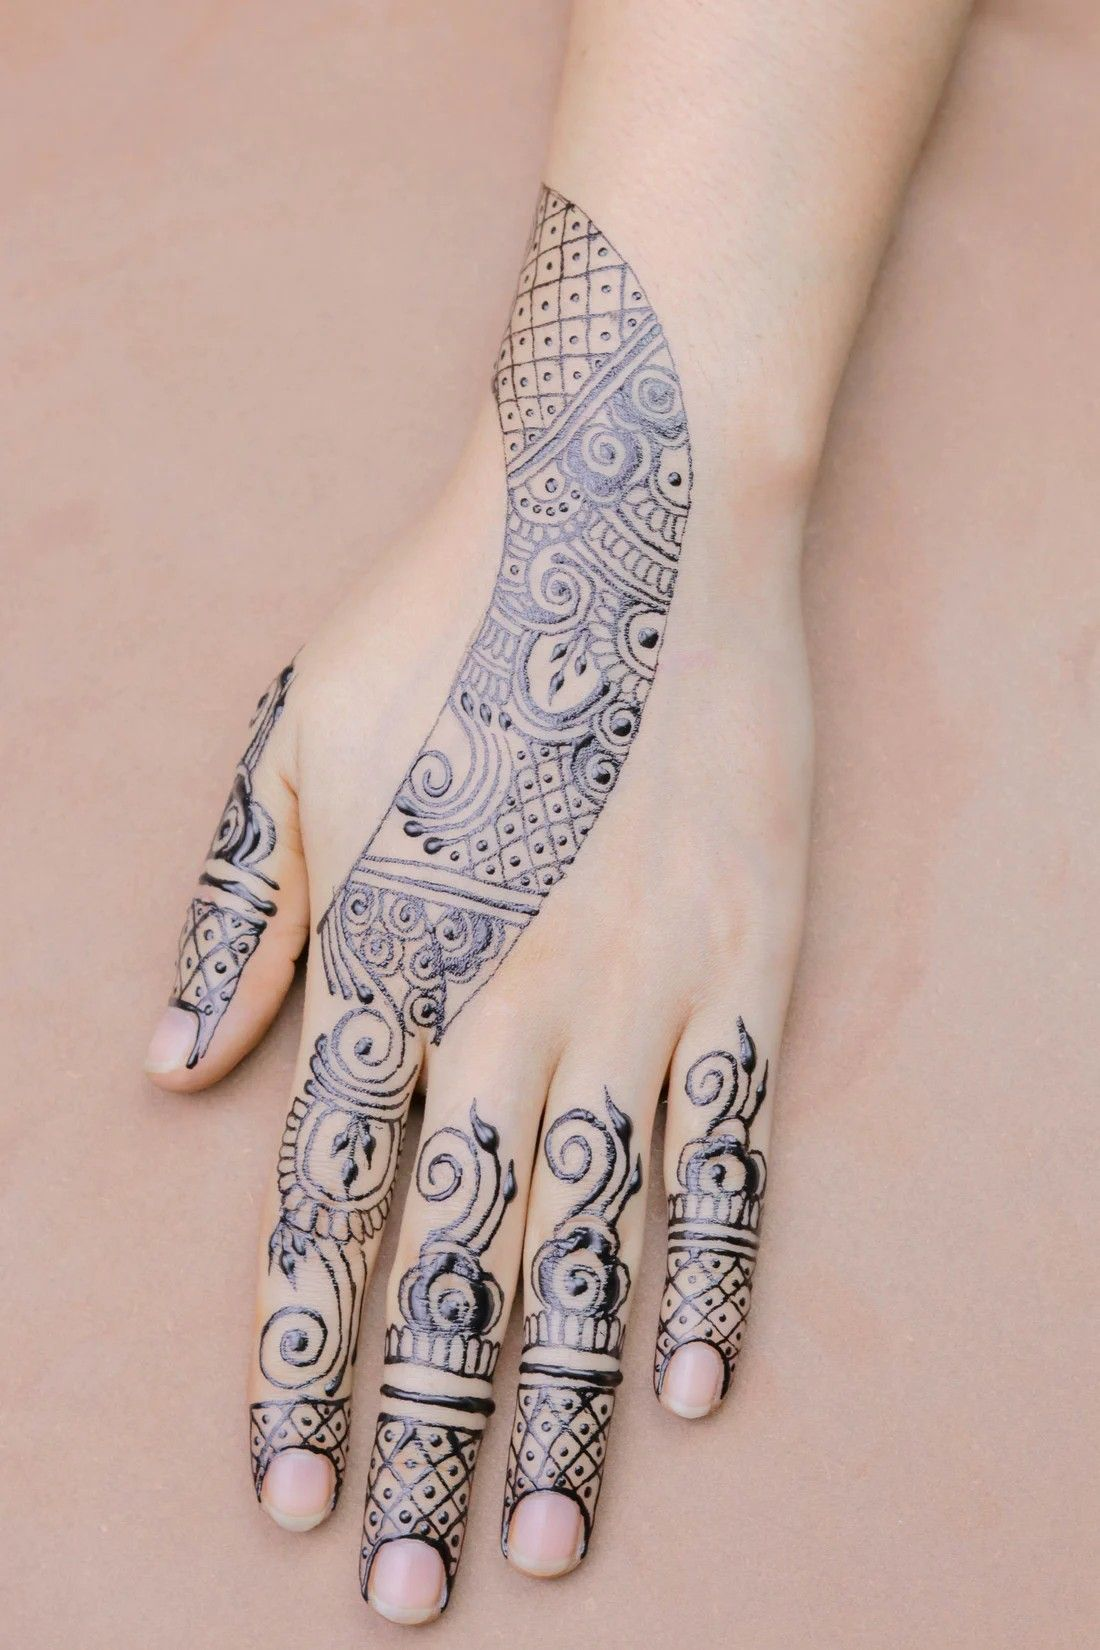 Pin By Allypally Glenconner On Mehndi Tattoos Present For Groom Groom Reaction